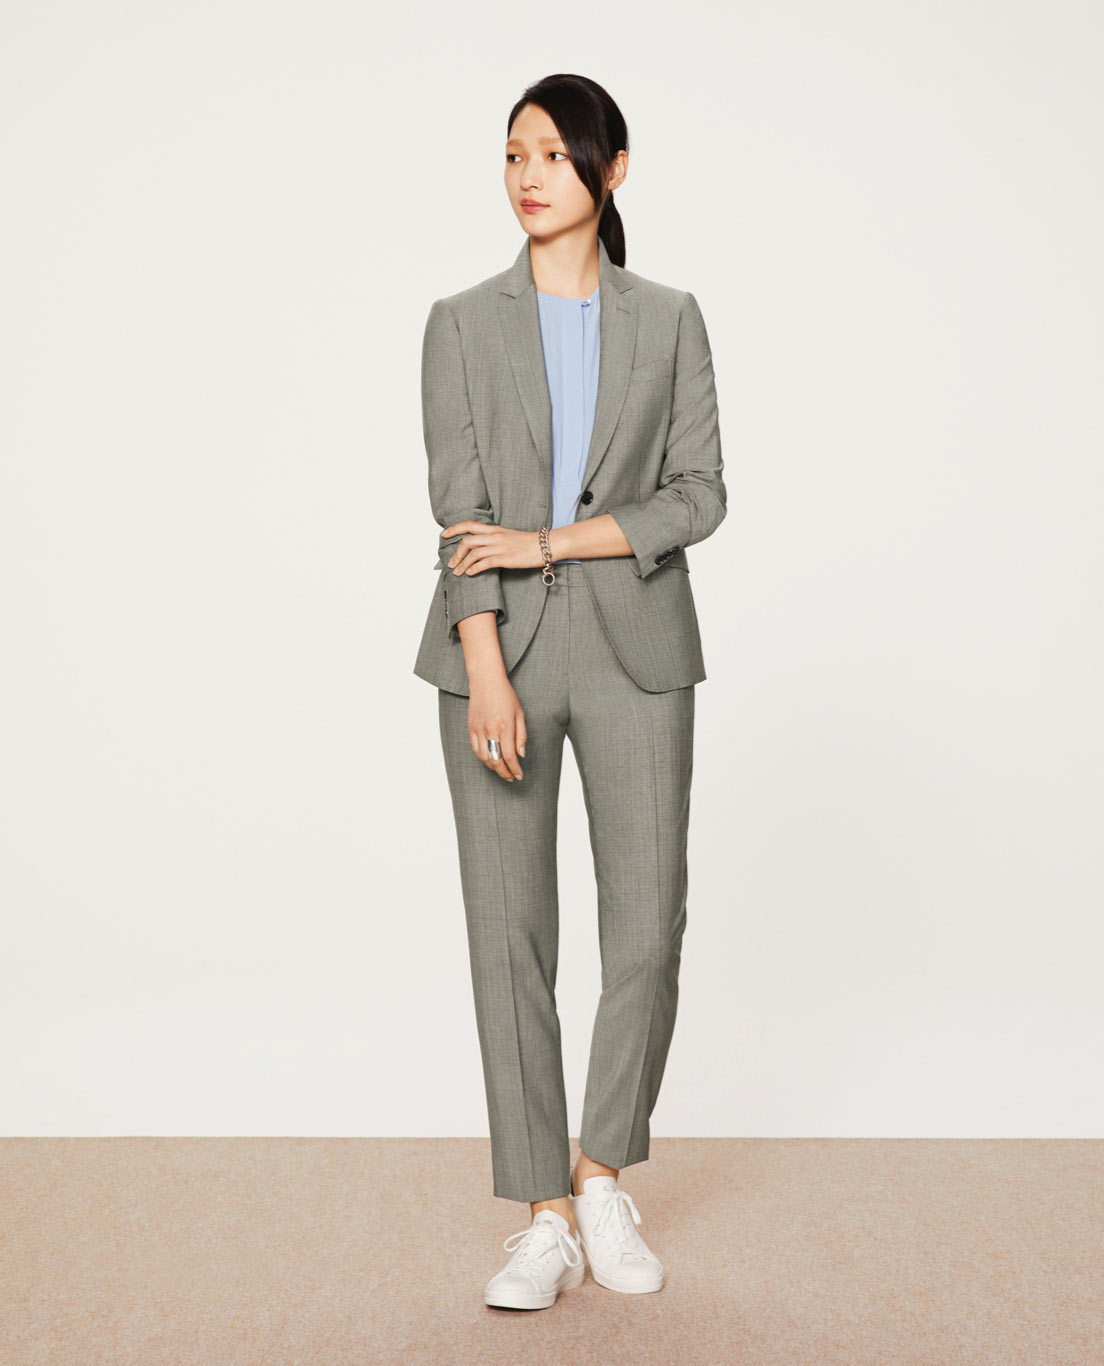 COMFORT TAILORED JACKET・TAPERED PANTS: 5501 / Light Grey Tropical S&S